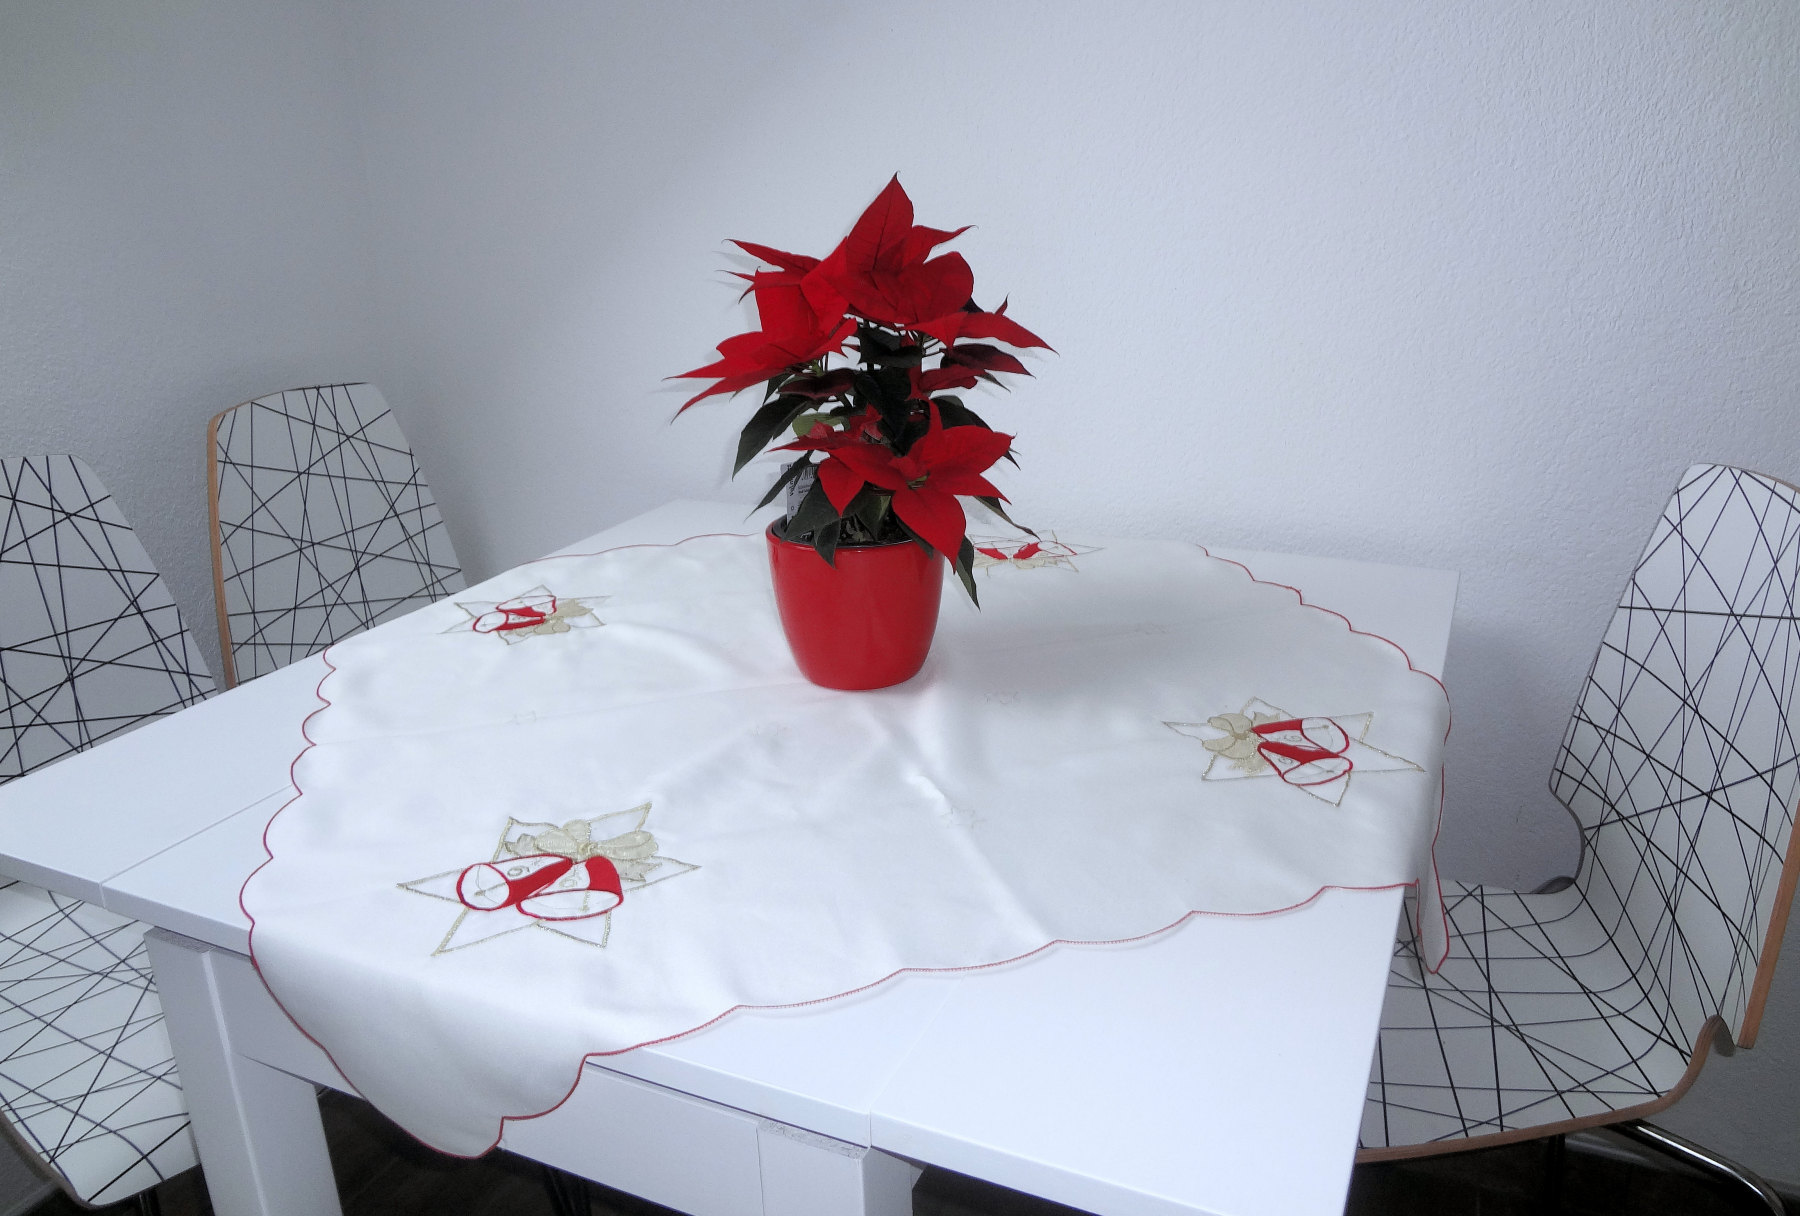 Red poinsettia With its star-shaped leaves and traditional red and green colouring on the dinning table